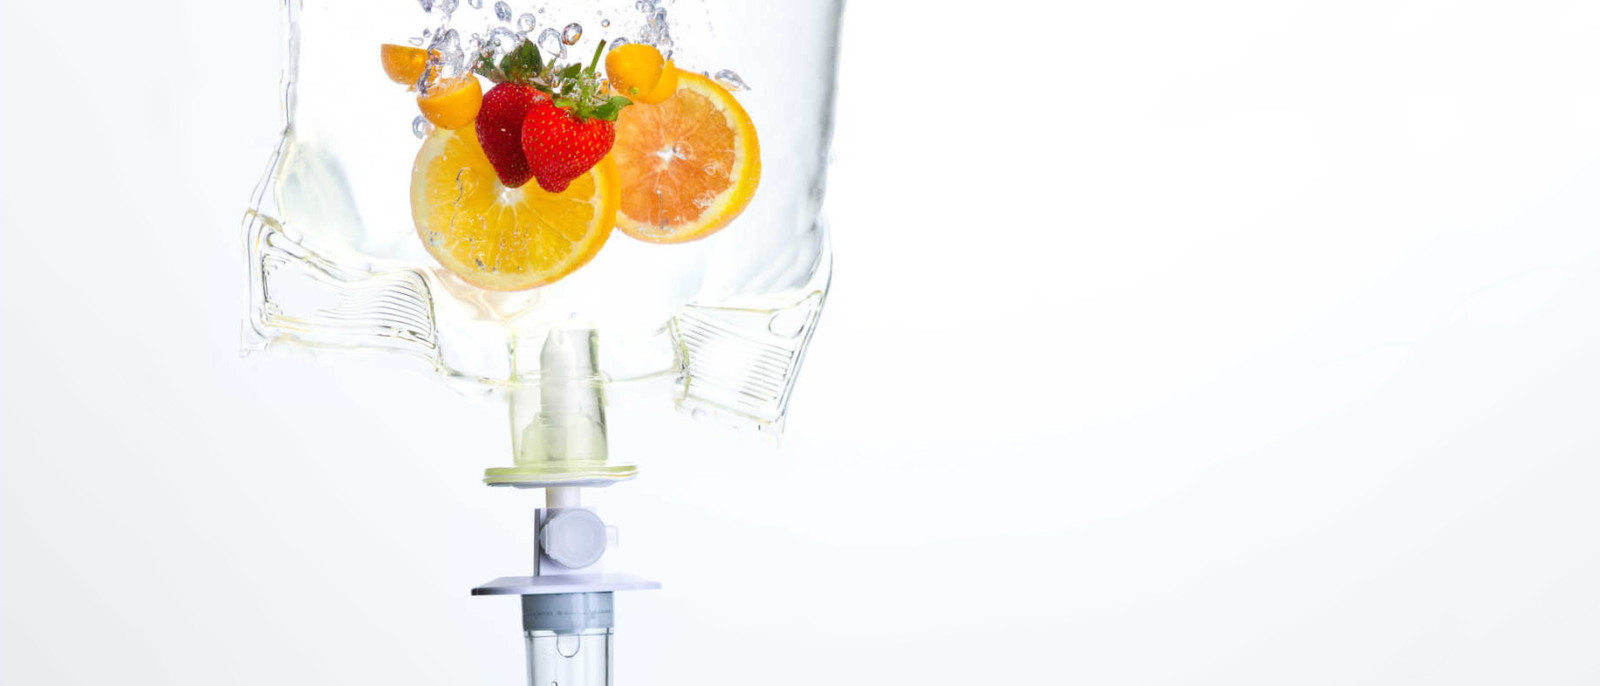 All About IV Nutritional Therapy